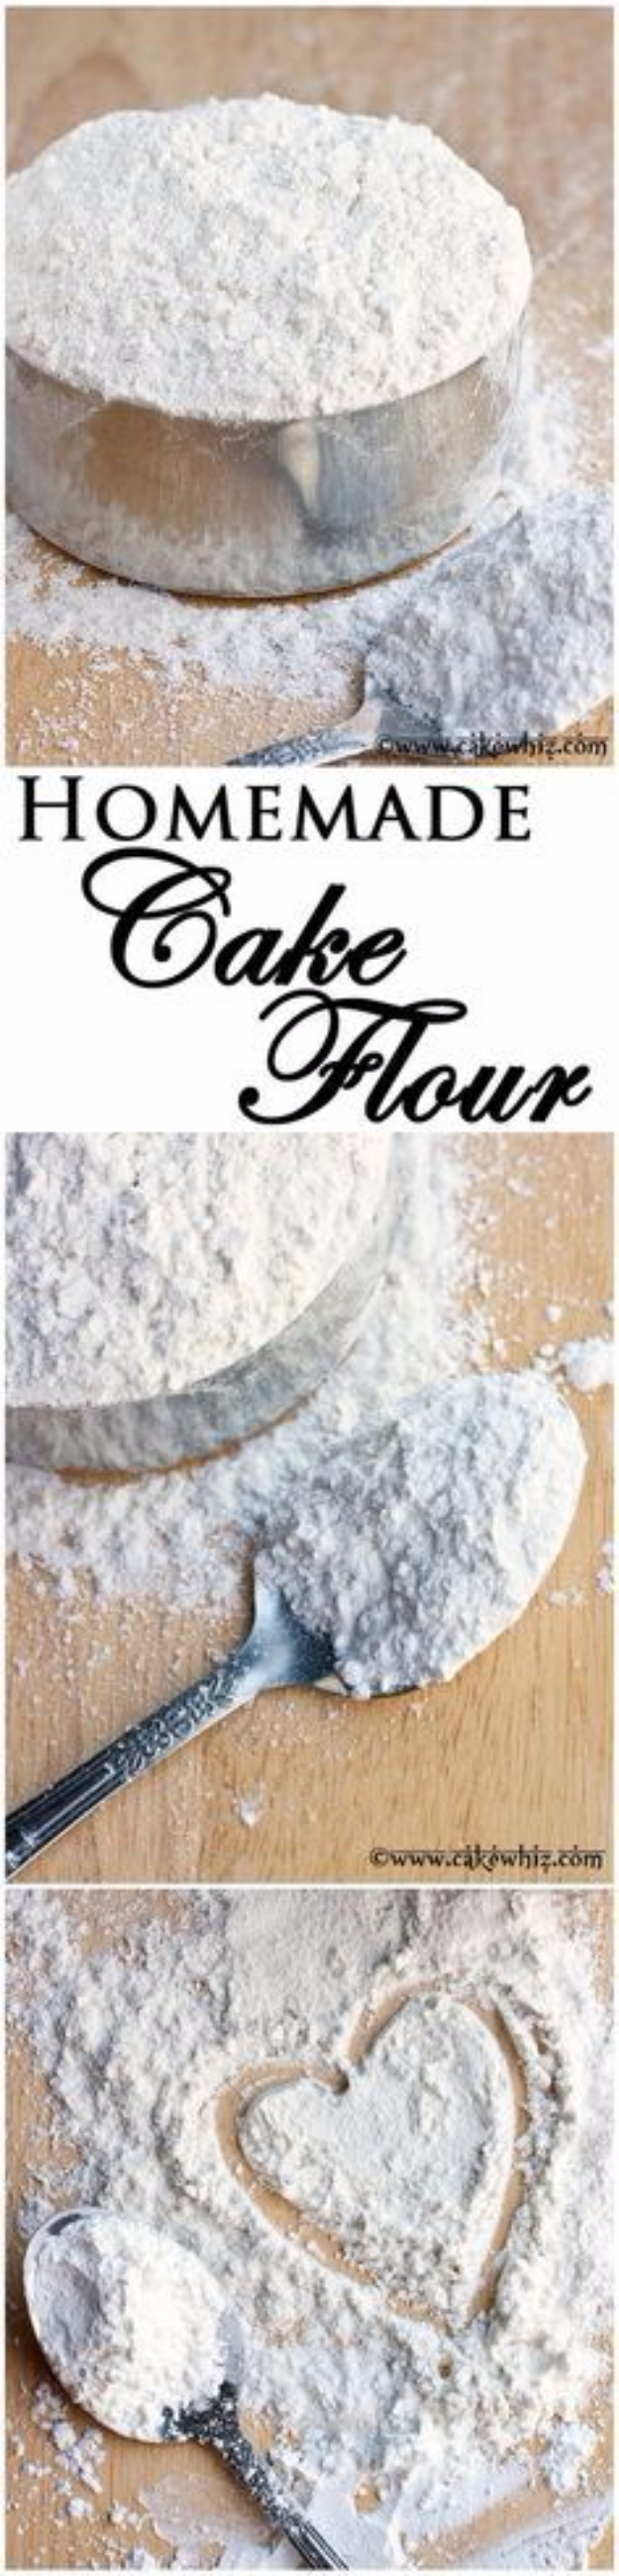 Best Baking Hacks - Homemade Cake Flour - DIY Cooking Tips and Tricks for Baking Recipes - Quick Ways to Bake Cake, Cupcakes, Desserts and Cookies - Kitchen Lifehacks for Bakers